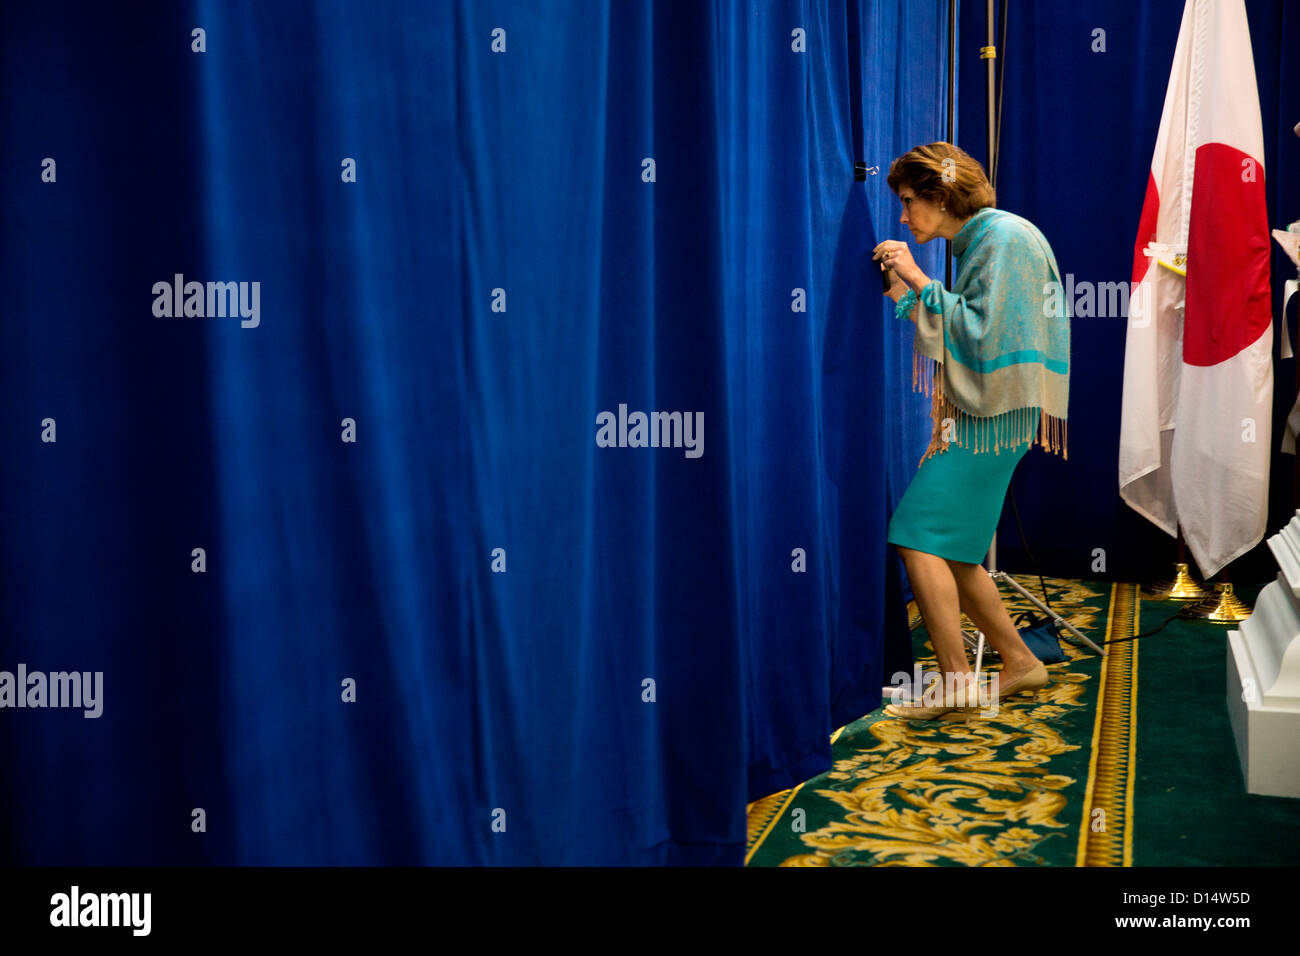 US Chief of Protocol Capricia Marshall peeks through the curtain to check on the progress of the bilateral meeting - Stock Image